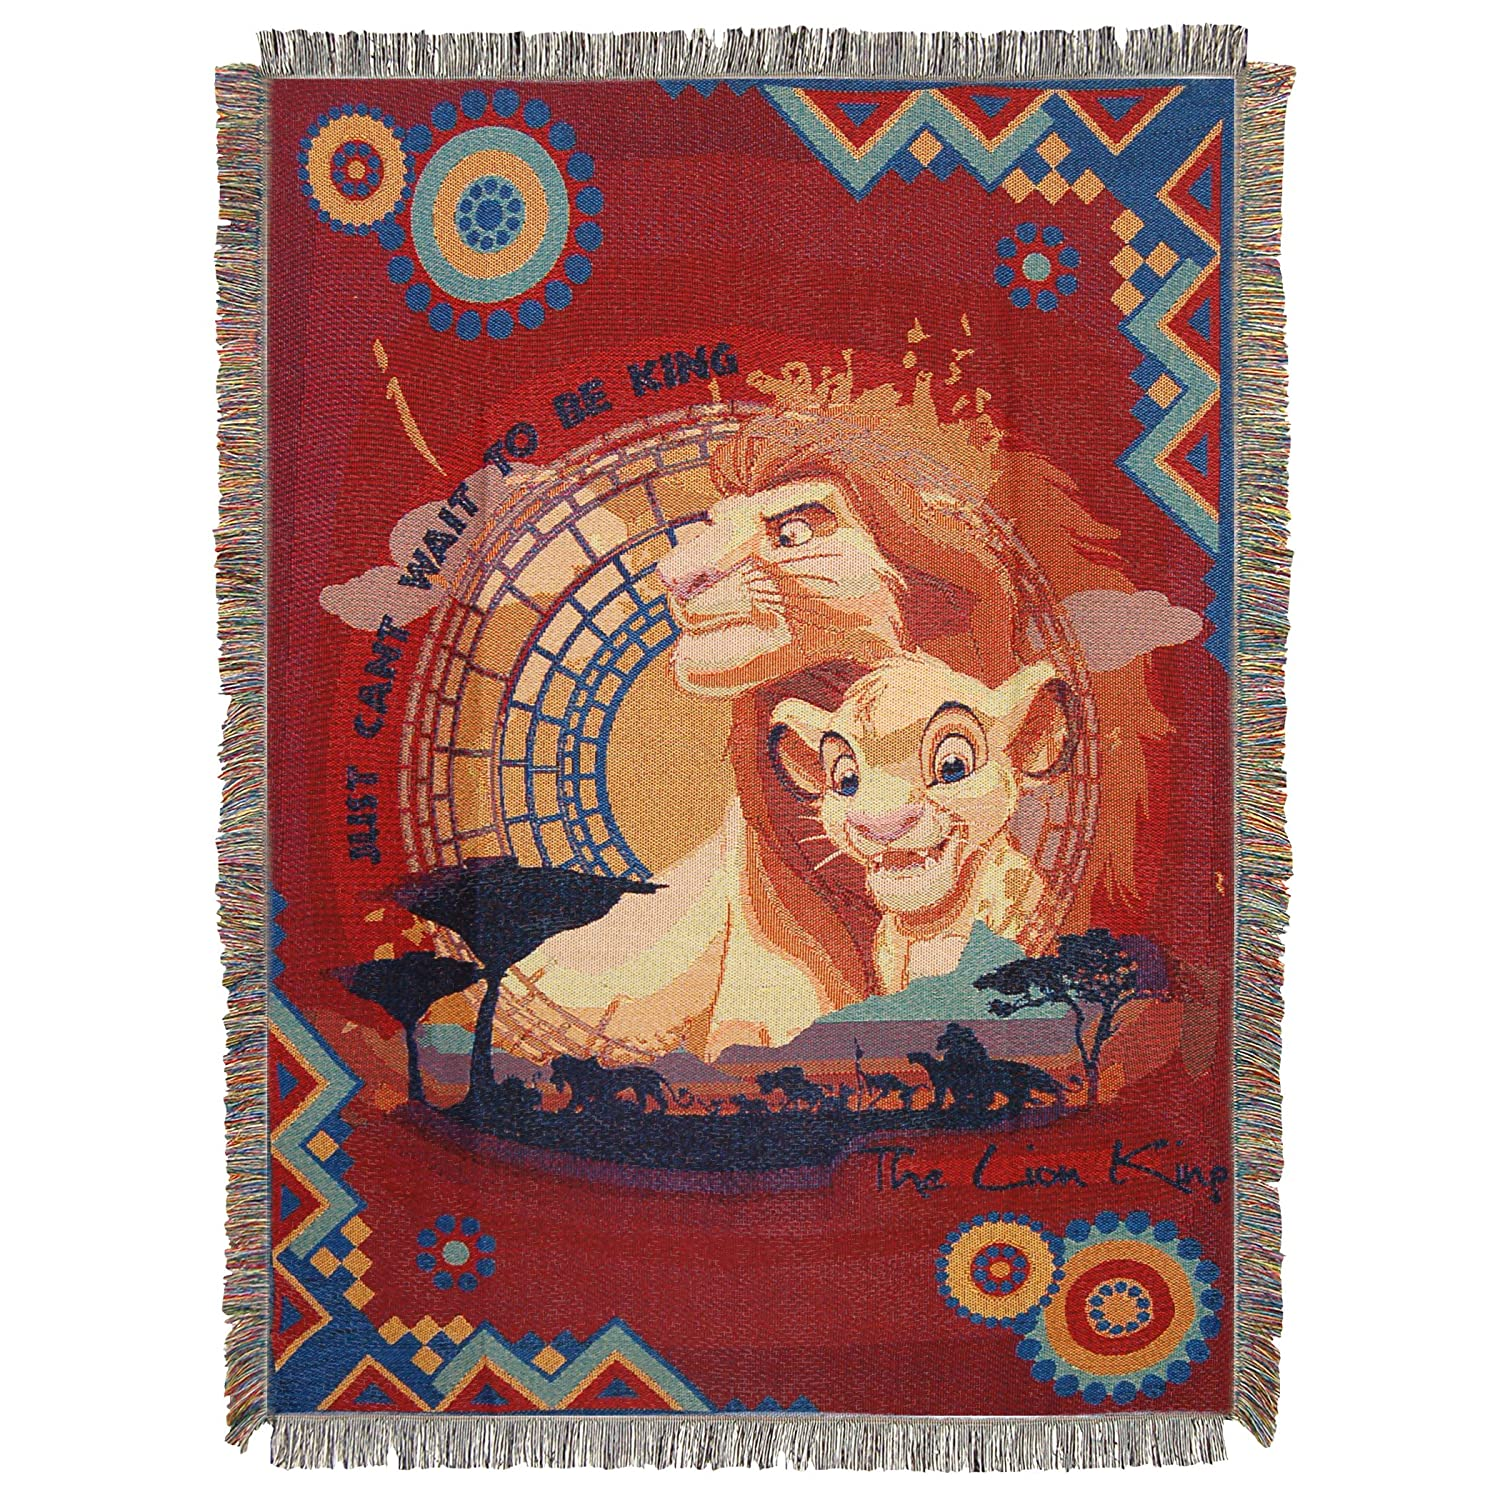 Disney The Lion King Woven Tapestry Throw Blanket, 48 x 60, Multi 48 x 60 The Northwest Company 1DLK/05100/0004/RET